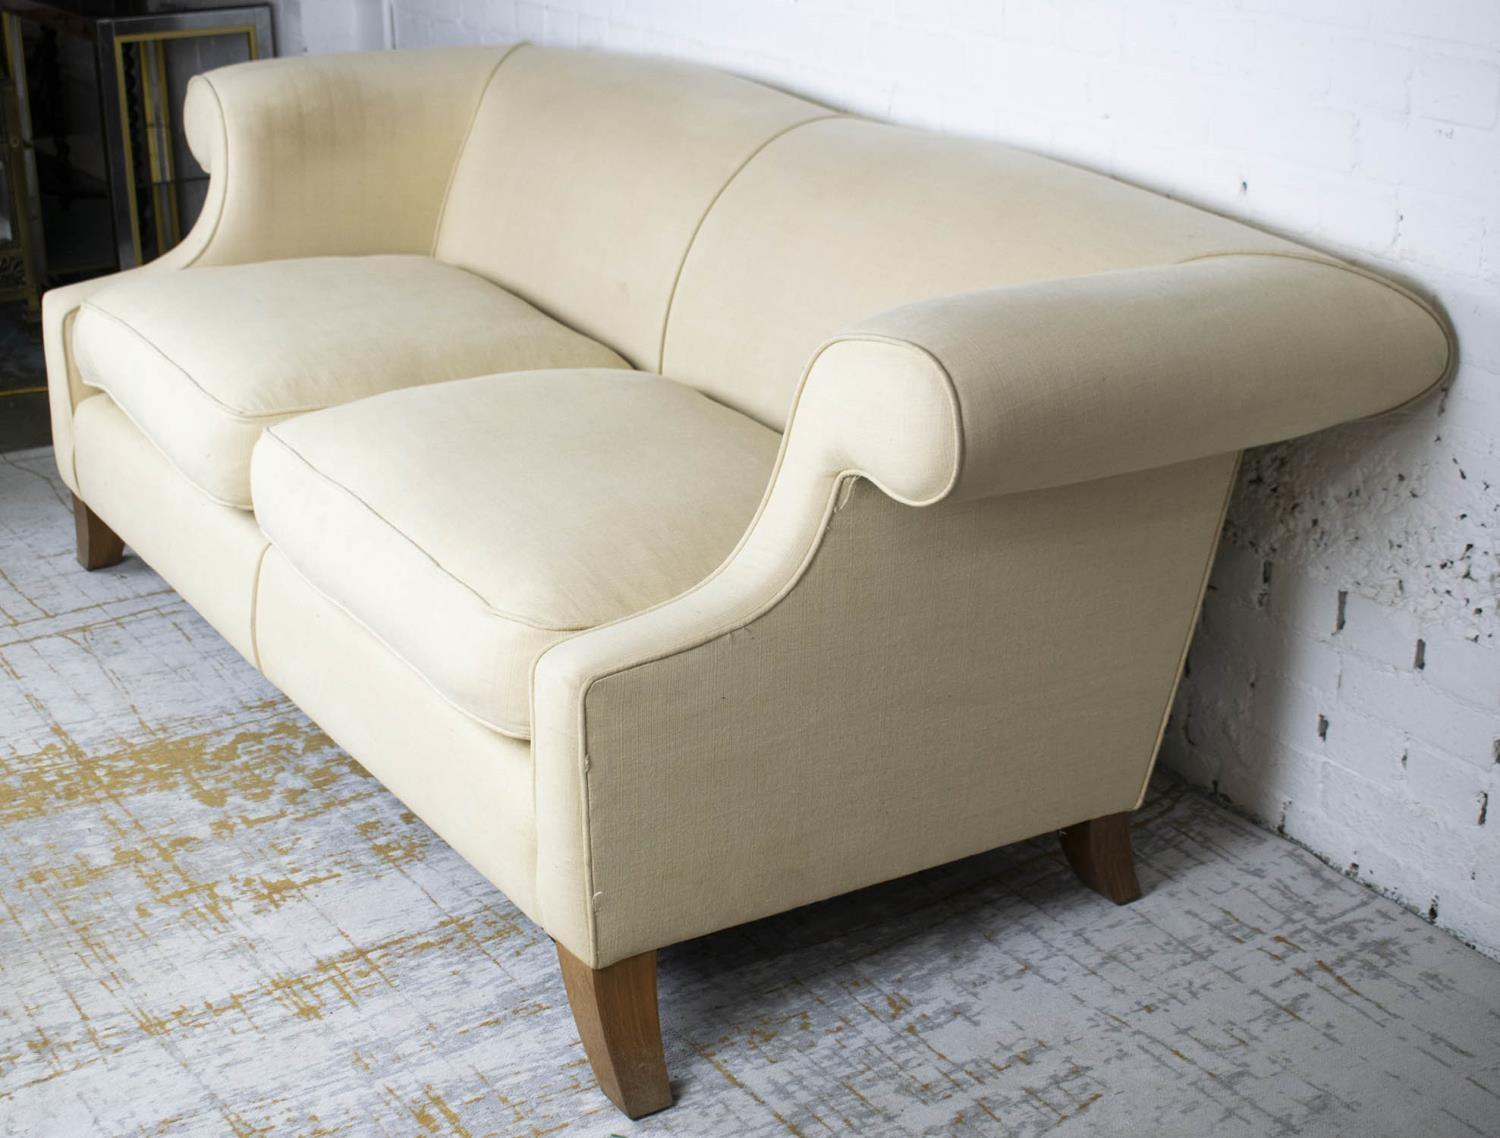 LINLEY SOFA, by David Linley, 77cm H x 203cm L x 98cm D. (with faults) - Image 2 of 7